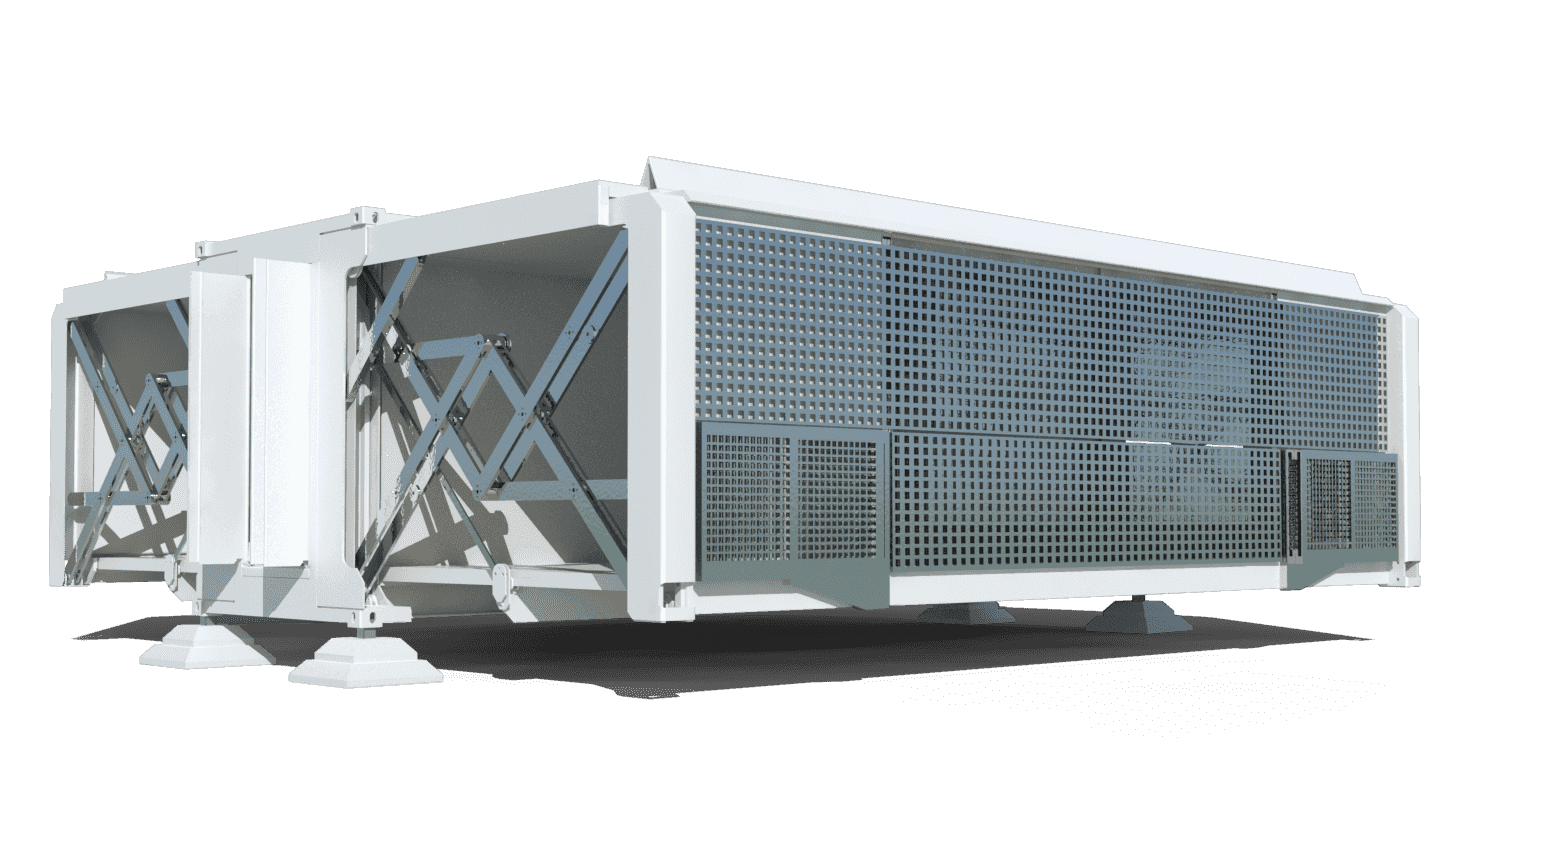 TEN FOLD develops ready to use movable buildings and